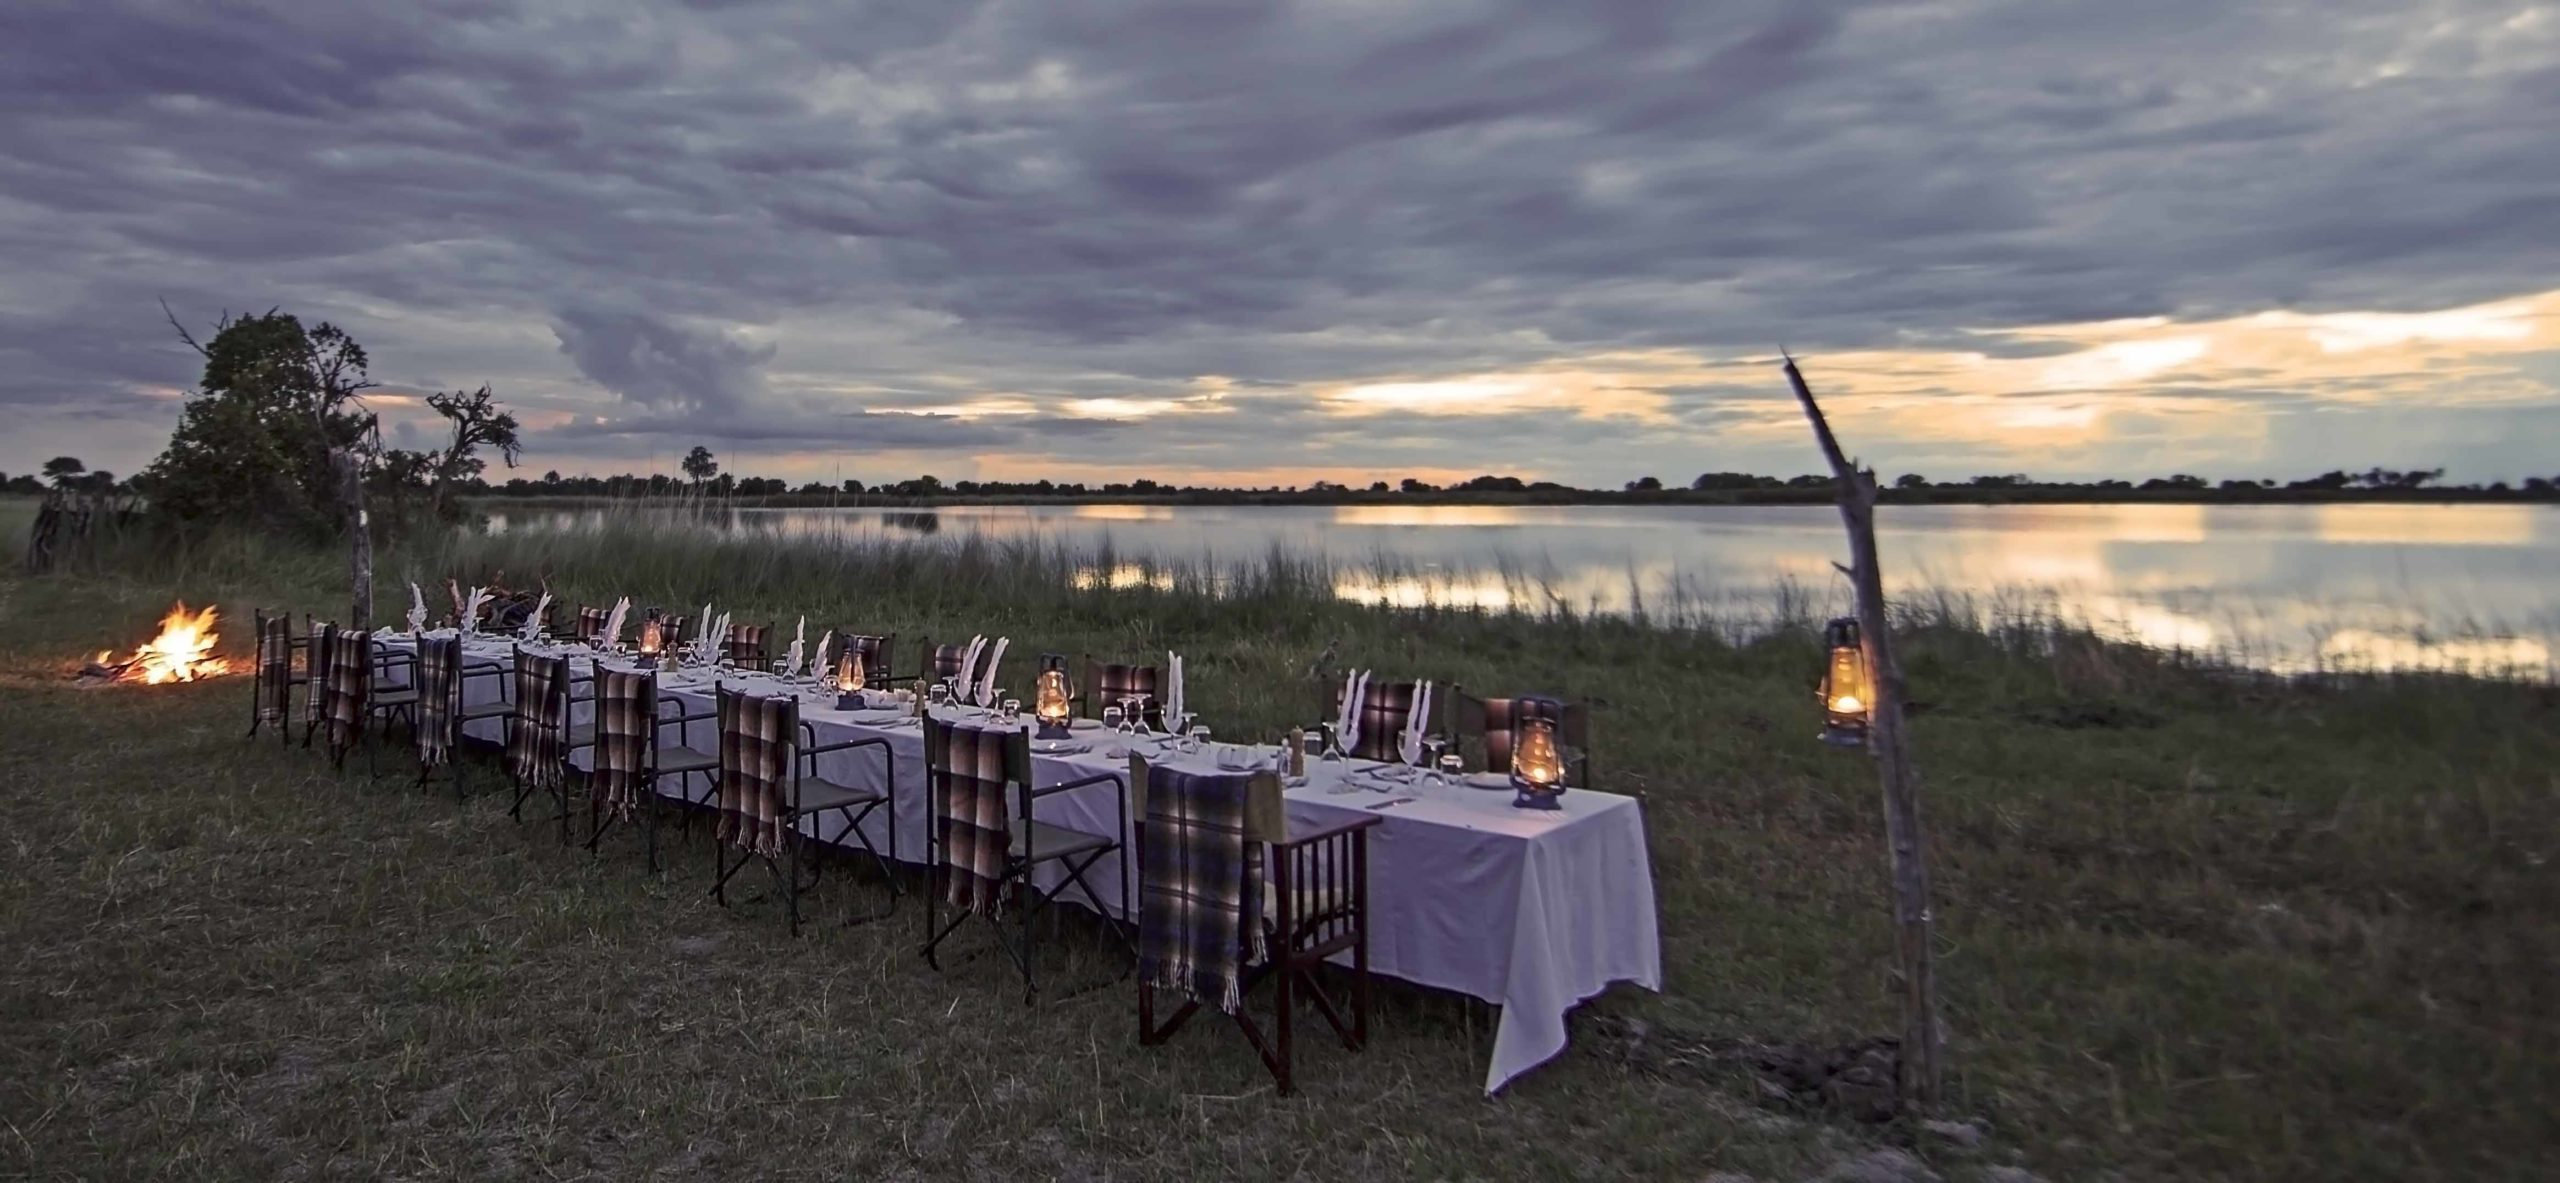 shinde camp bush dinner by the water seen on our Botswana safari